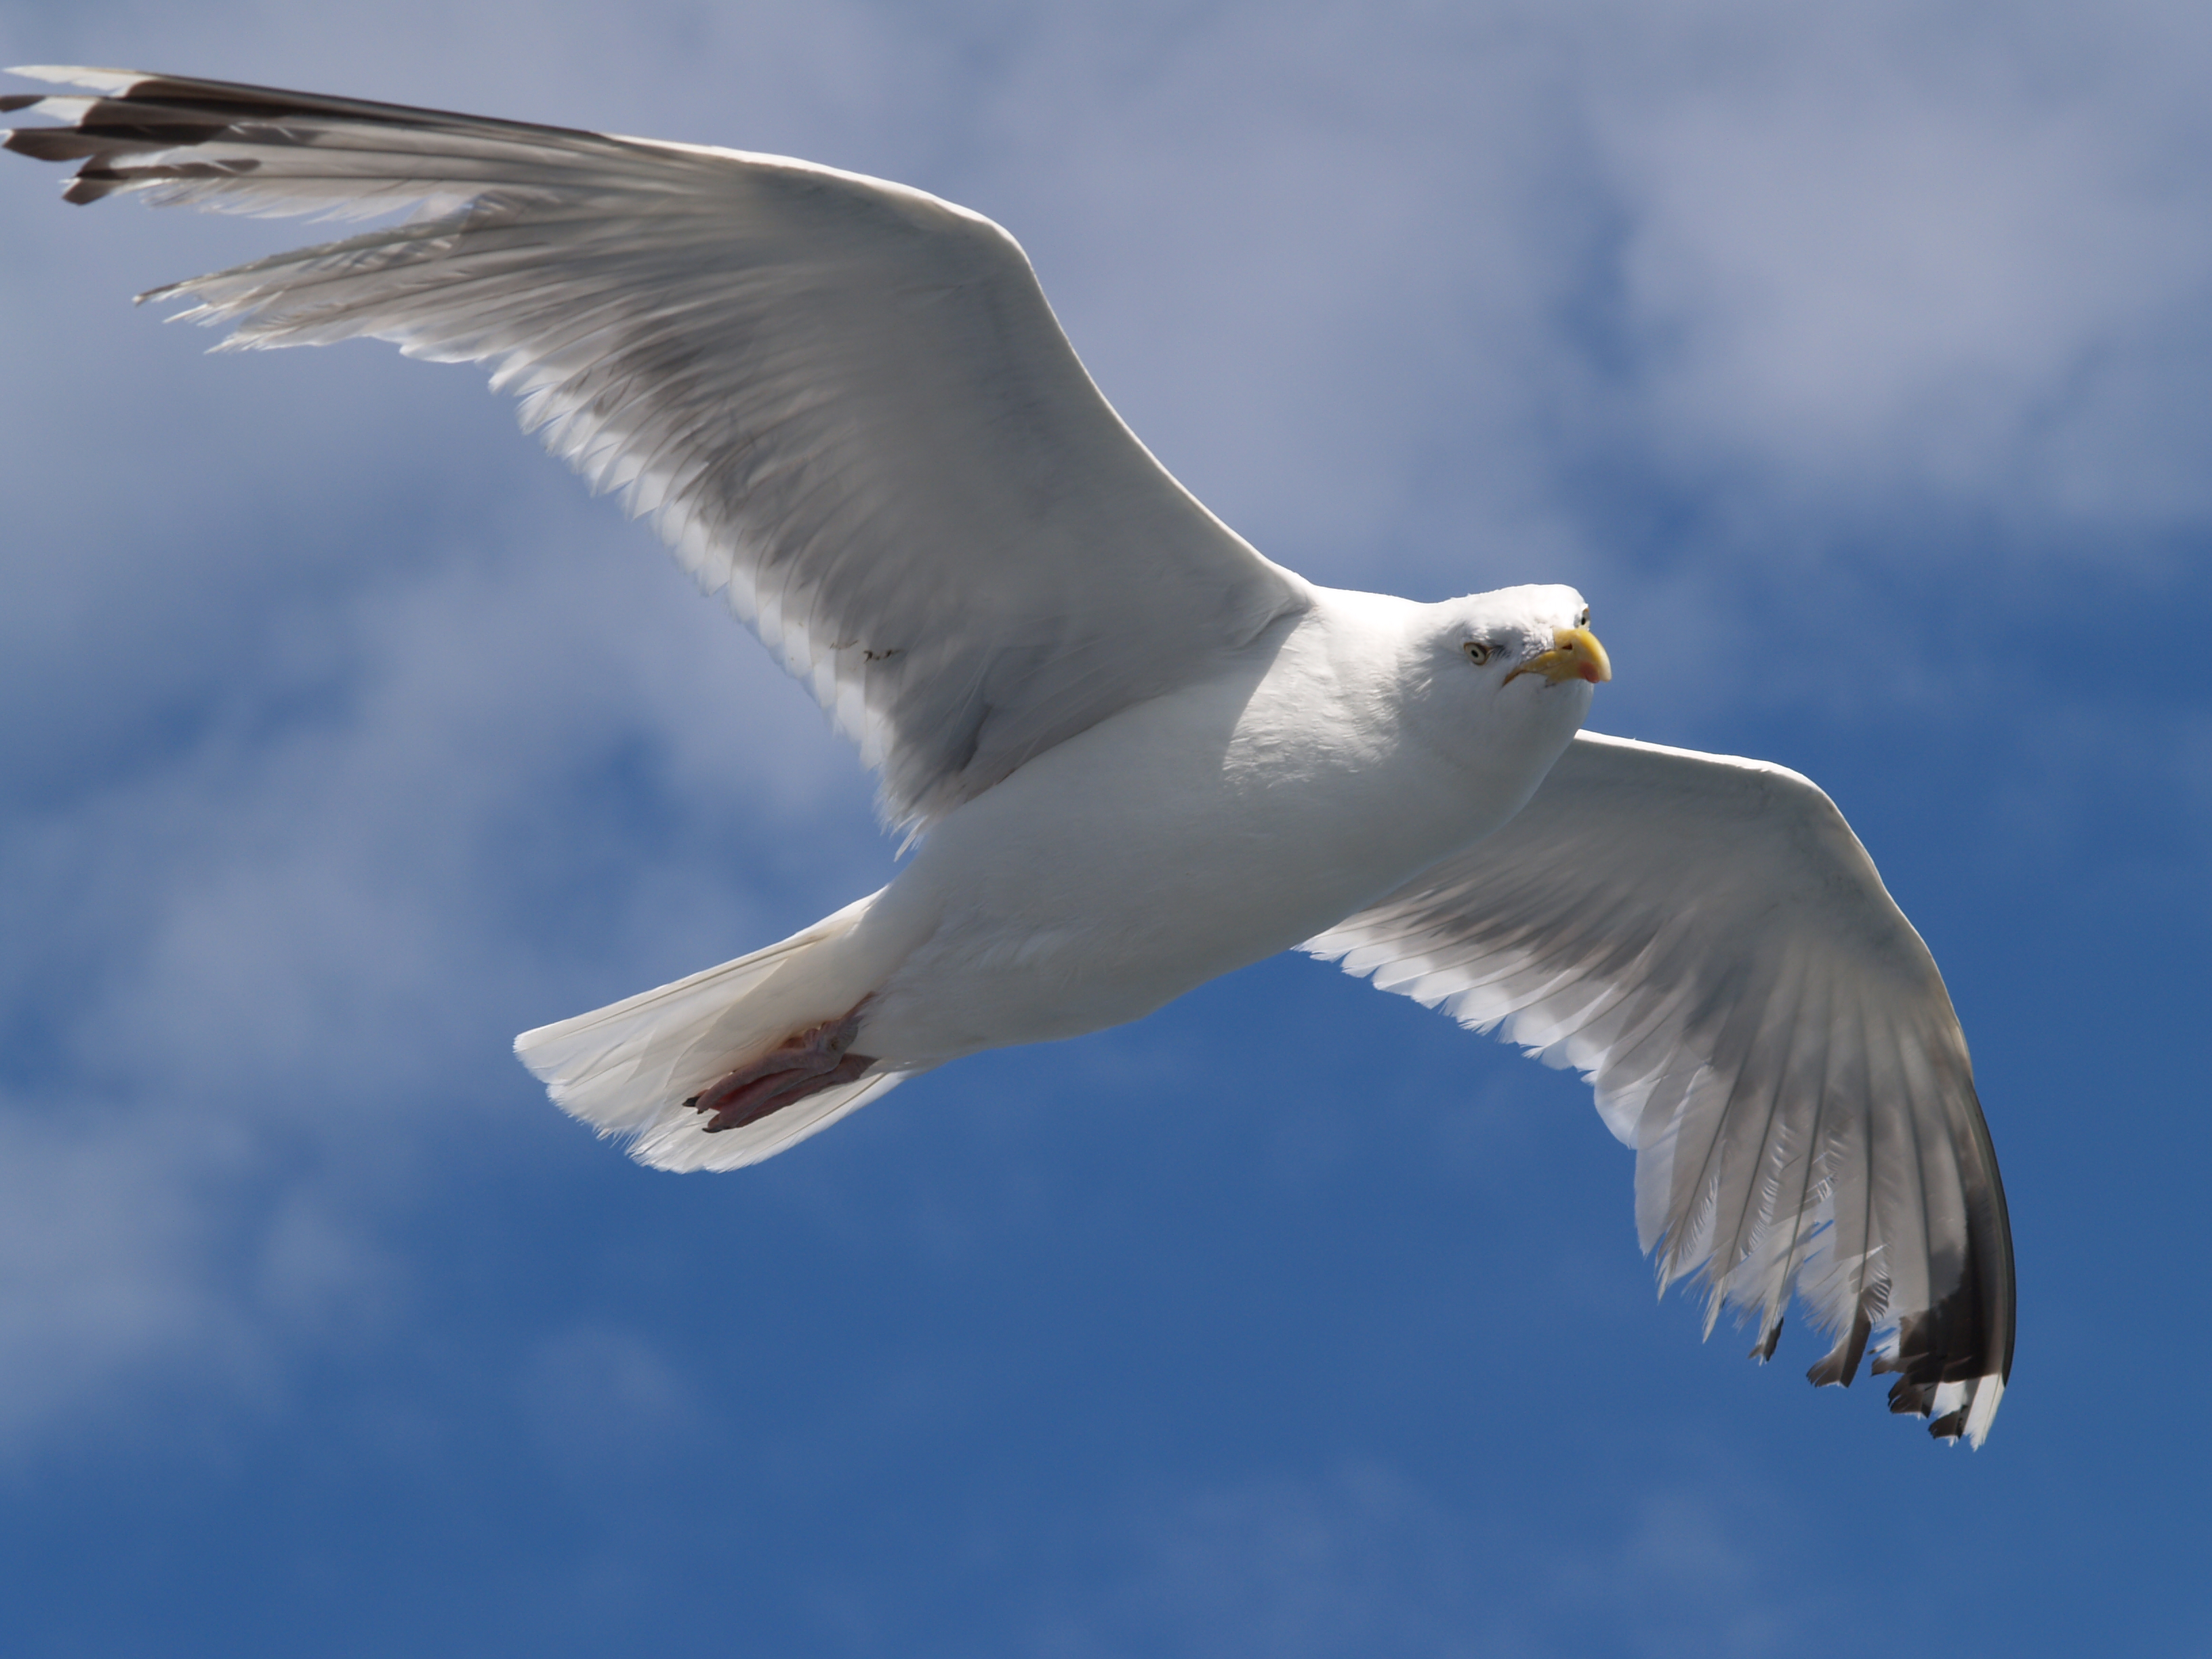 File:Seagull flying (4).jpg - Wikimedia Commons